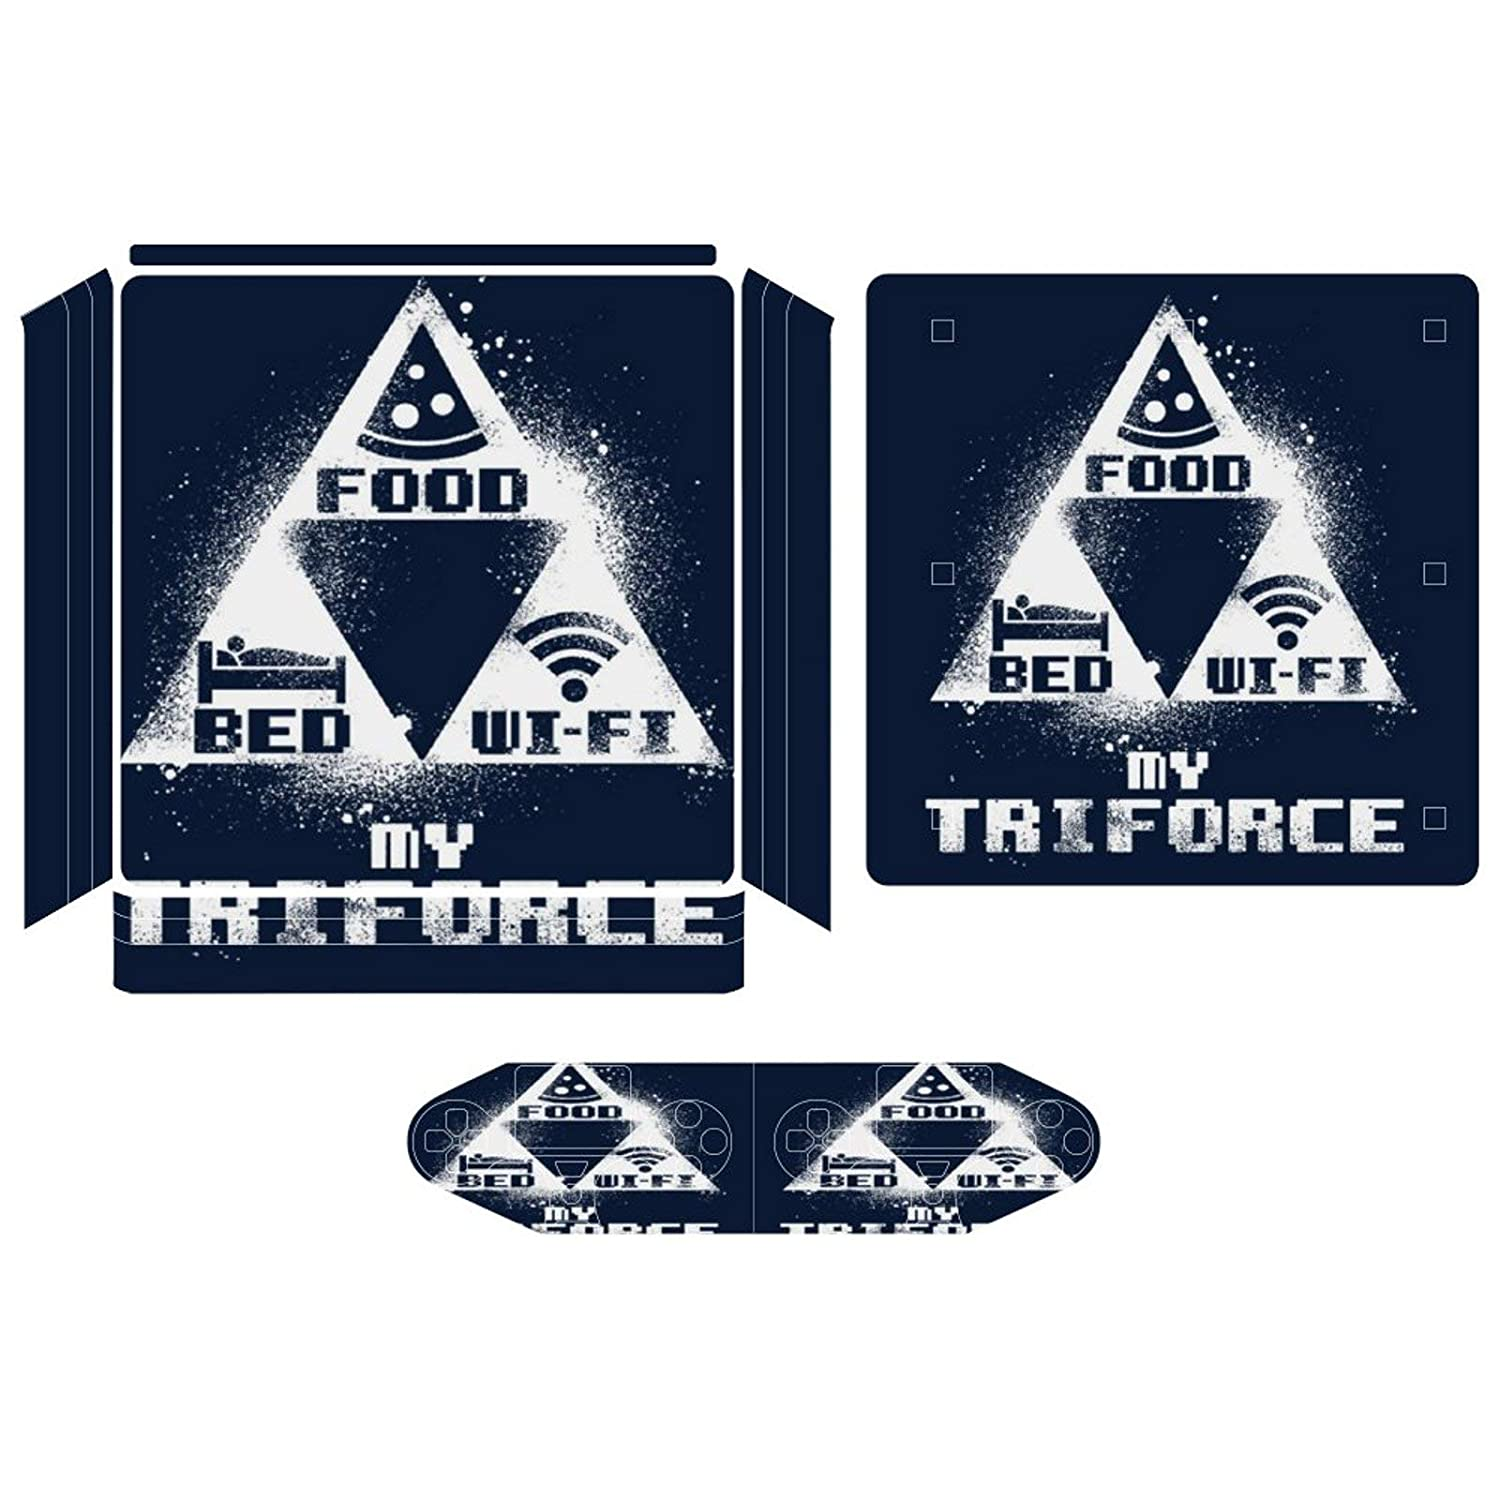 Triforce Food Bed Wifi Compatible with PS4 Slim controller and console skin sticker protective cover wireless/wired gamepad controller